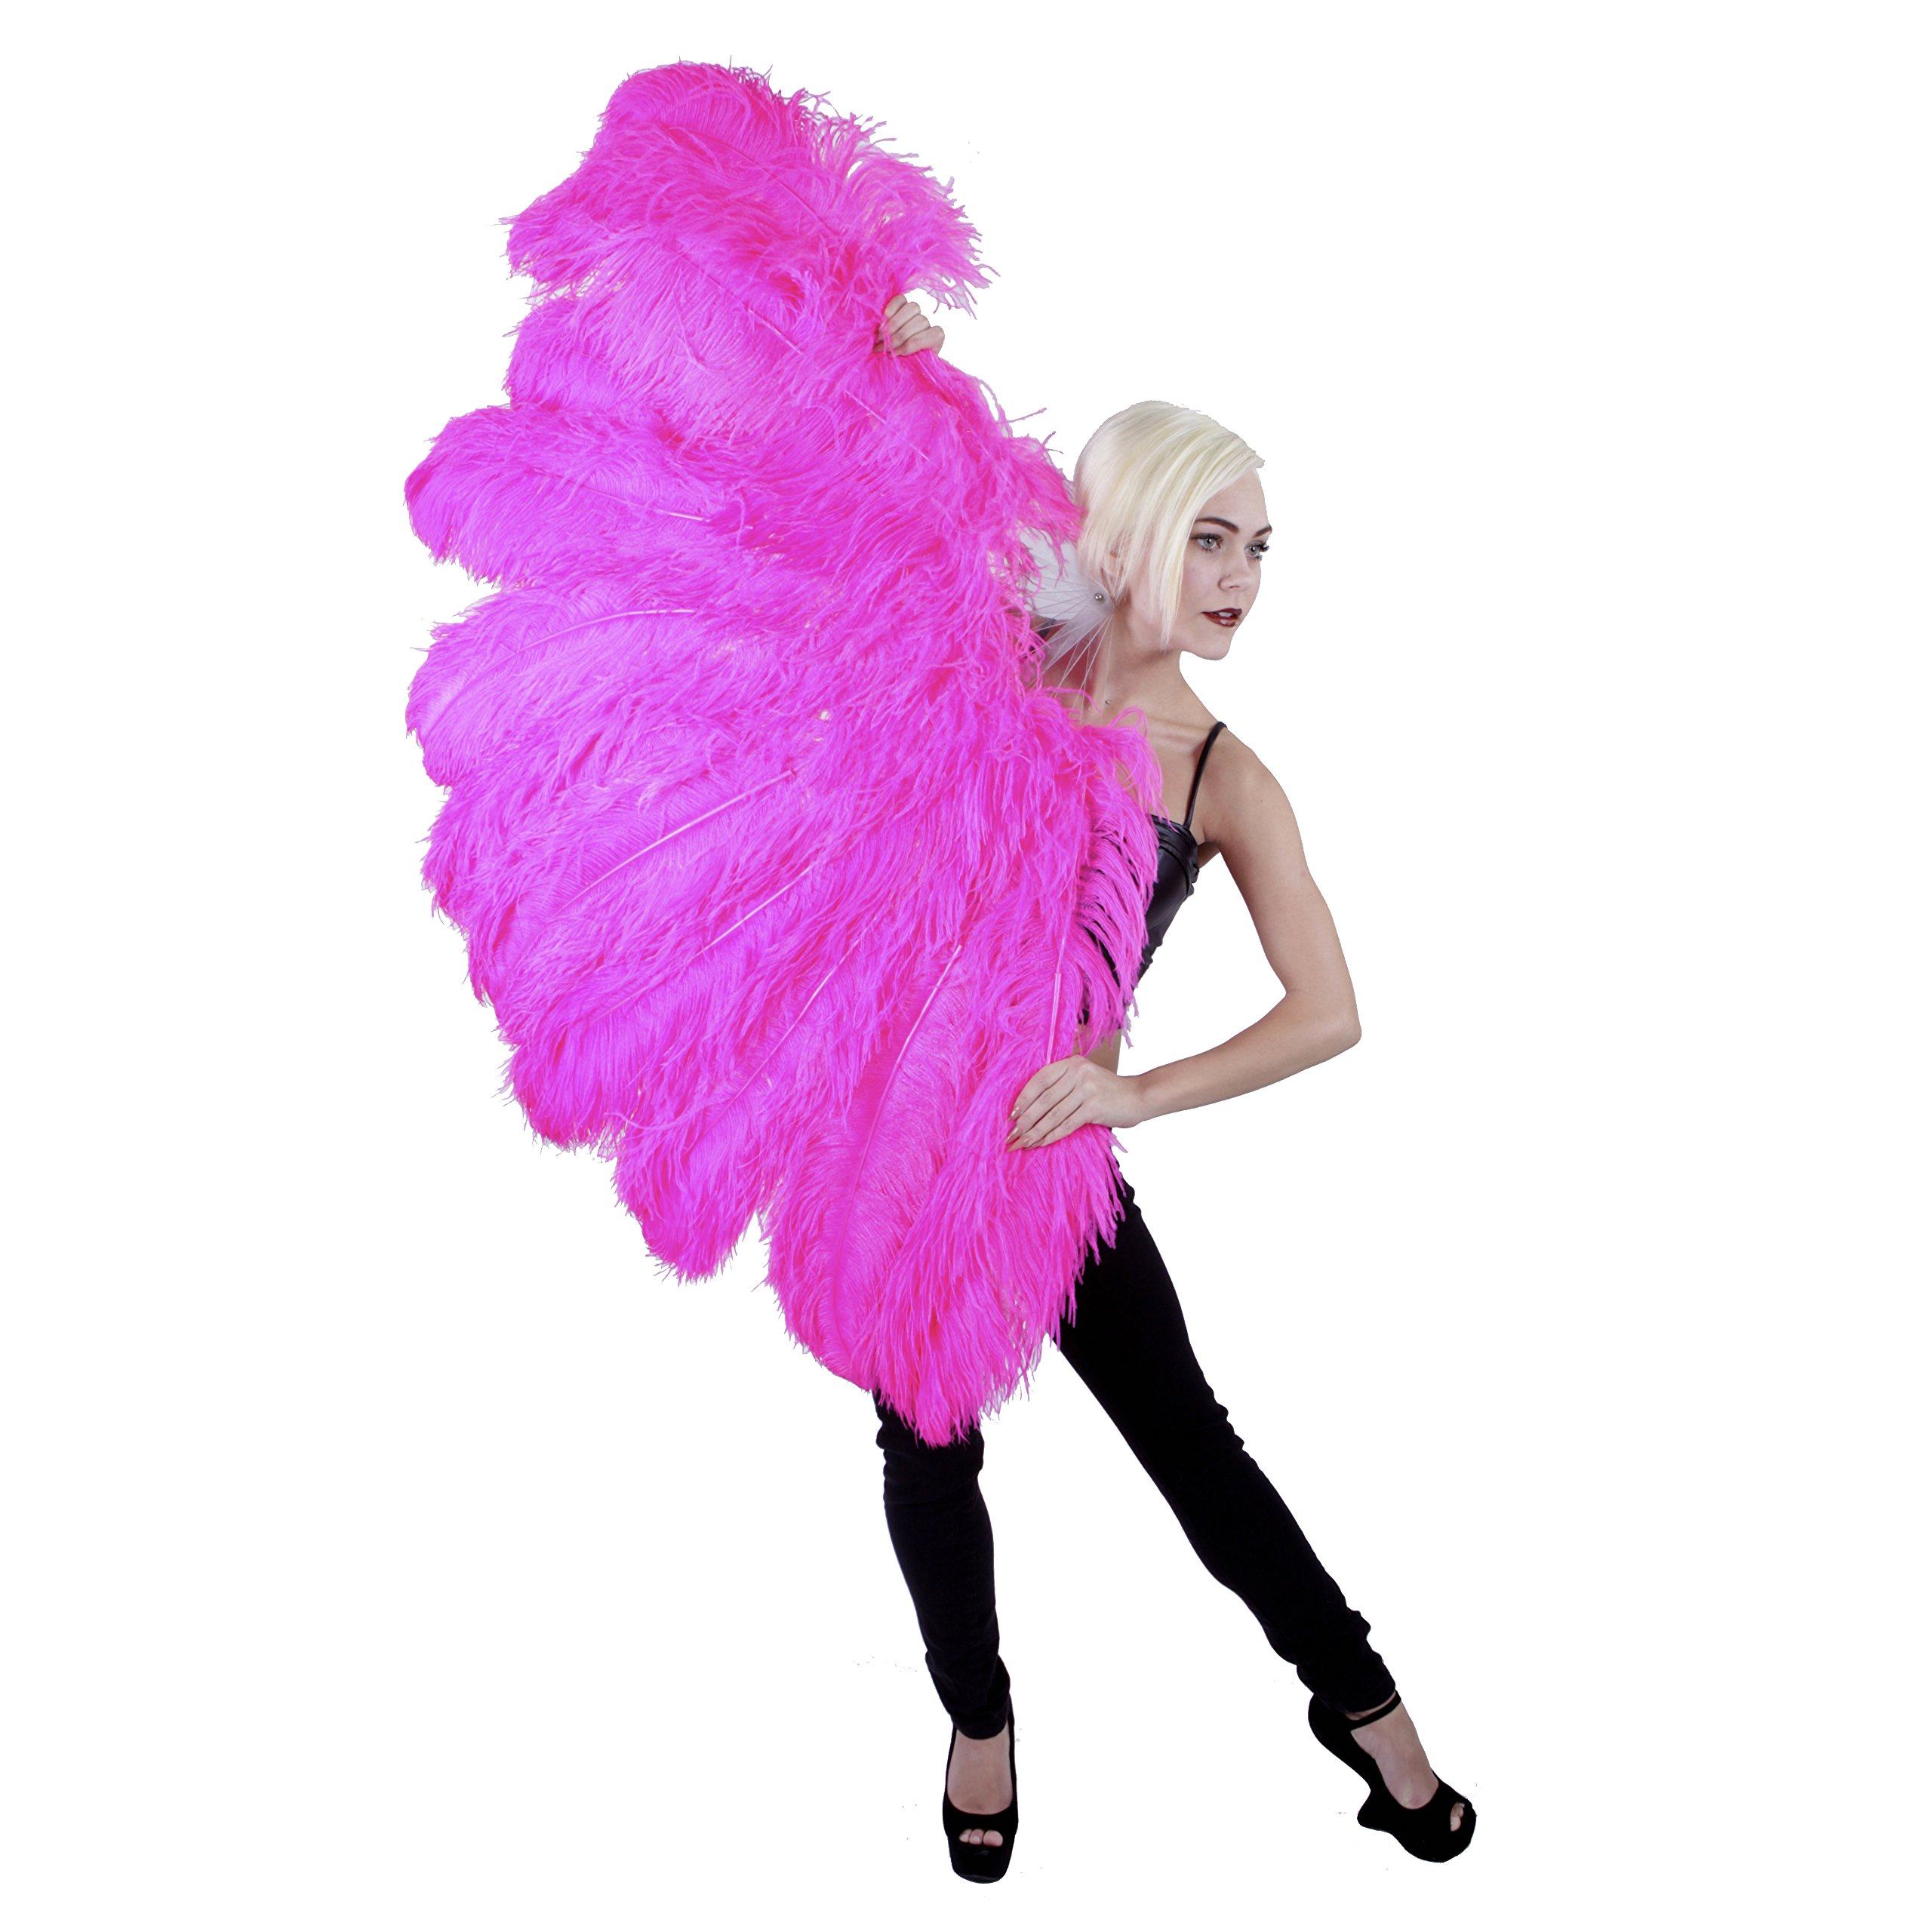 Feather Fan w/Ostrich Femina - Shocking Pink by Zucker Feather (TM)